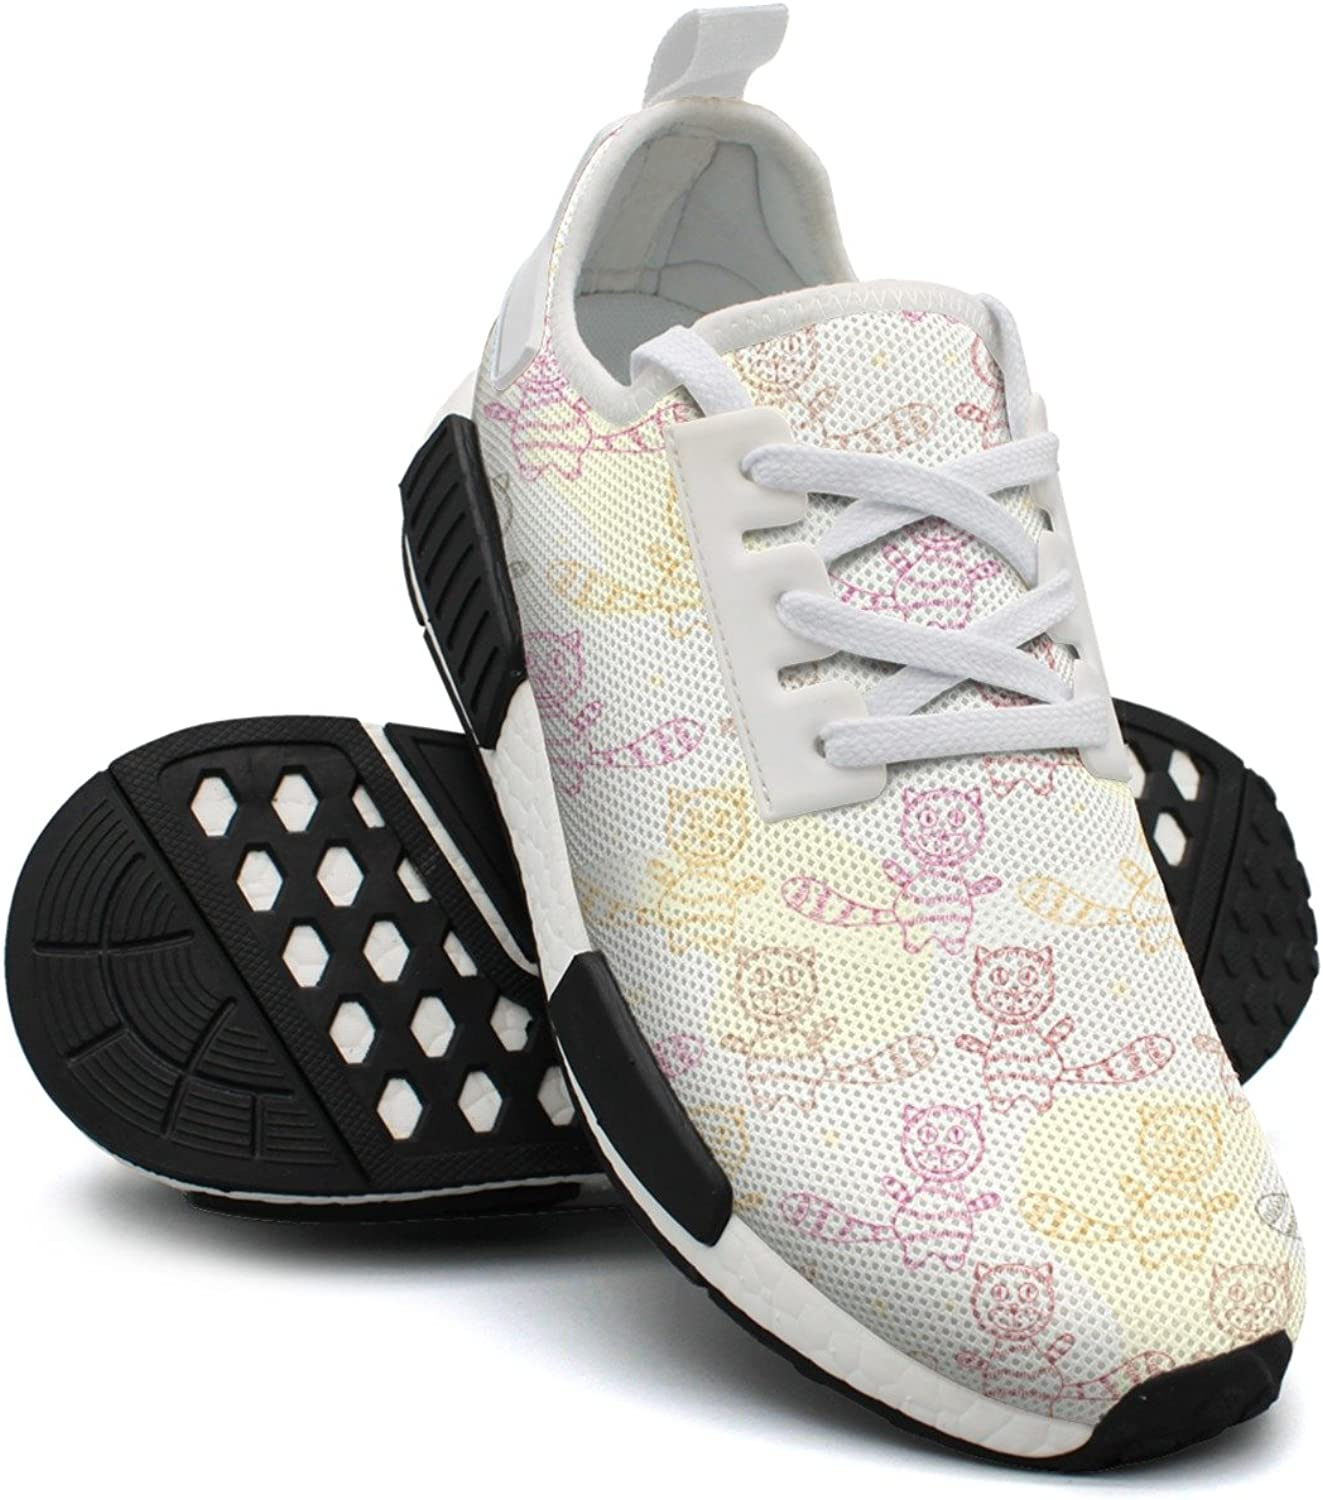 Colourful Persian Cat Women's Jogger Lightweight Sneakers shoes Gym Outdoor Sports shoes